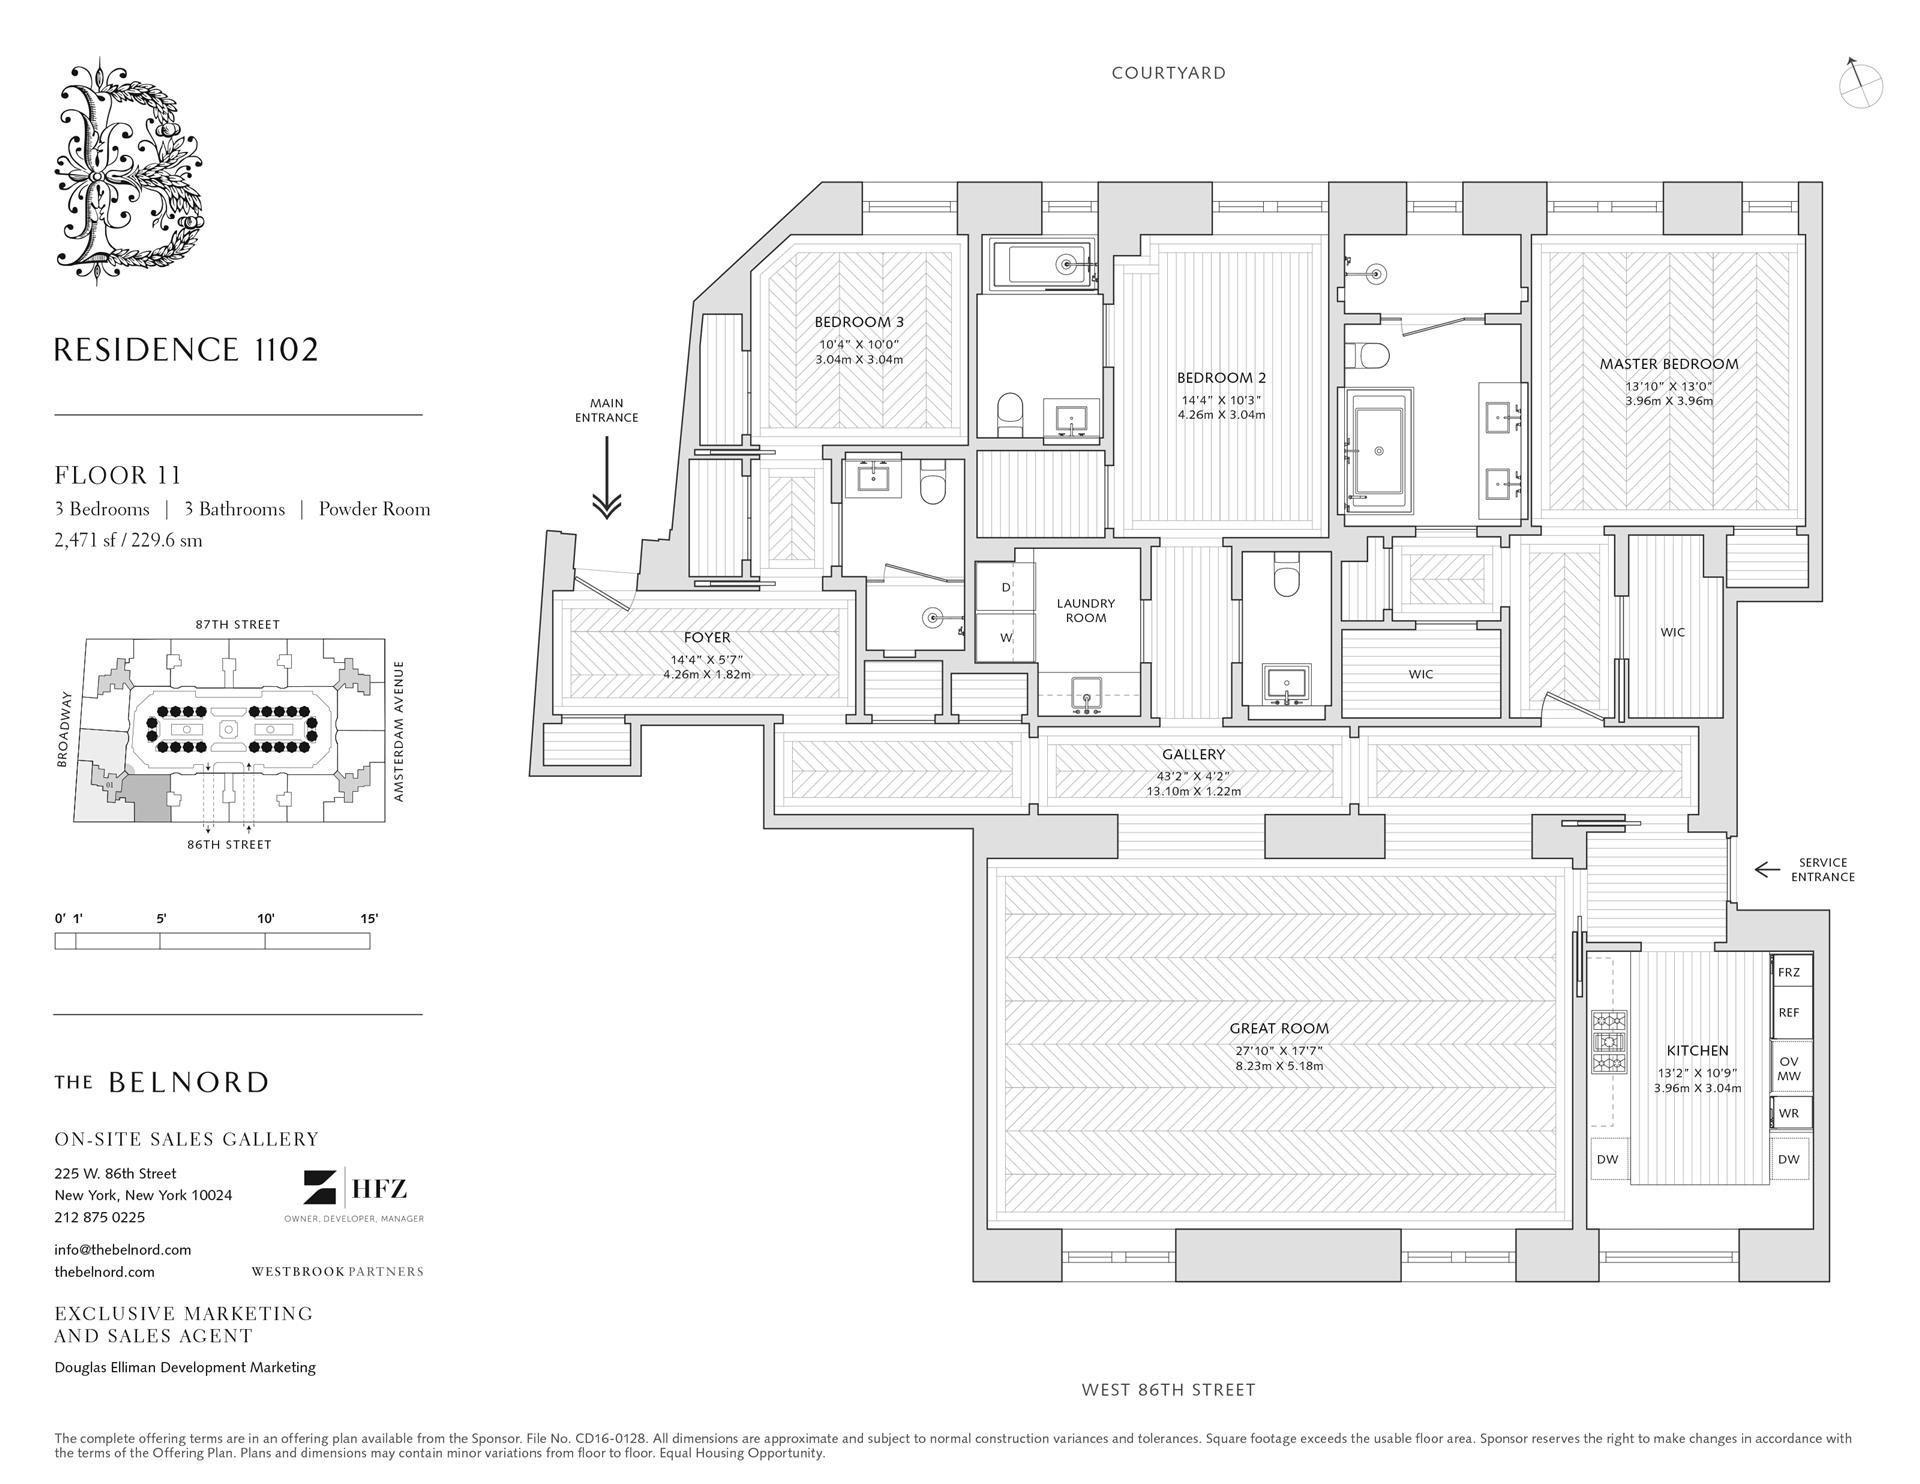 Floor plan of The Belnord, 225 West 86th St, 1102 - Upper West Side, New York